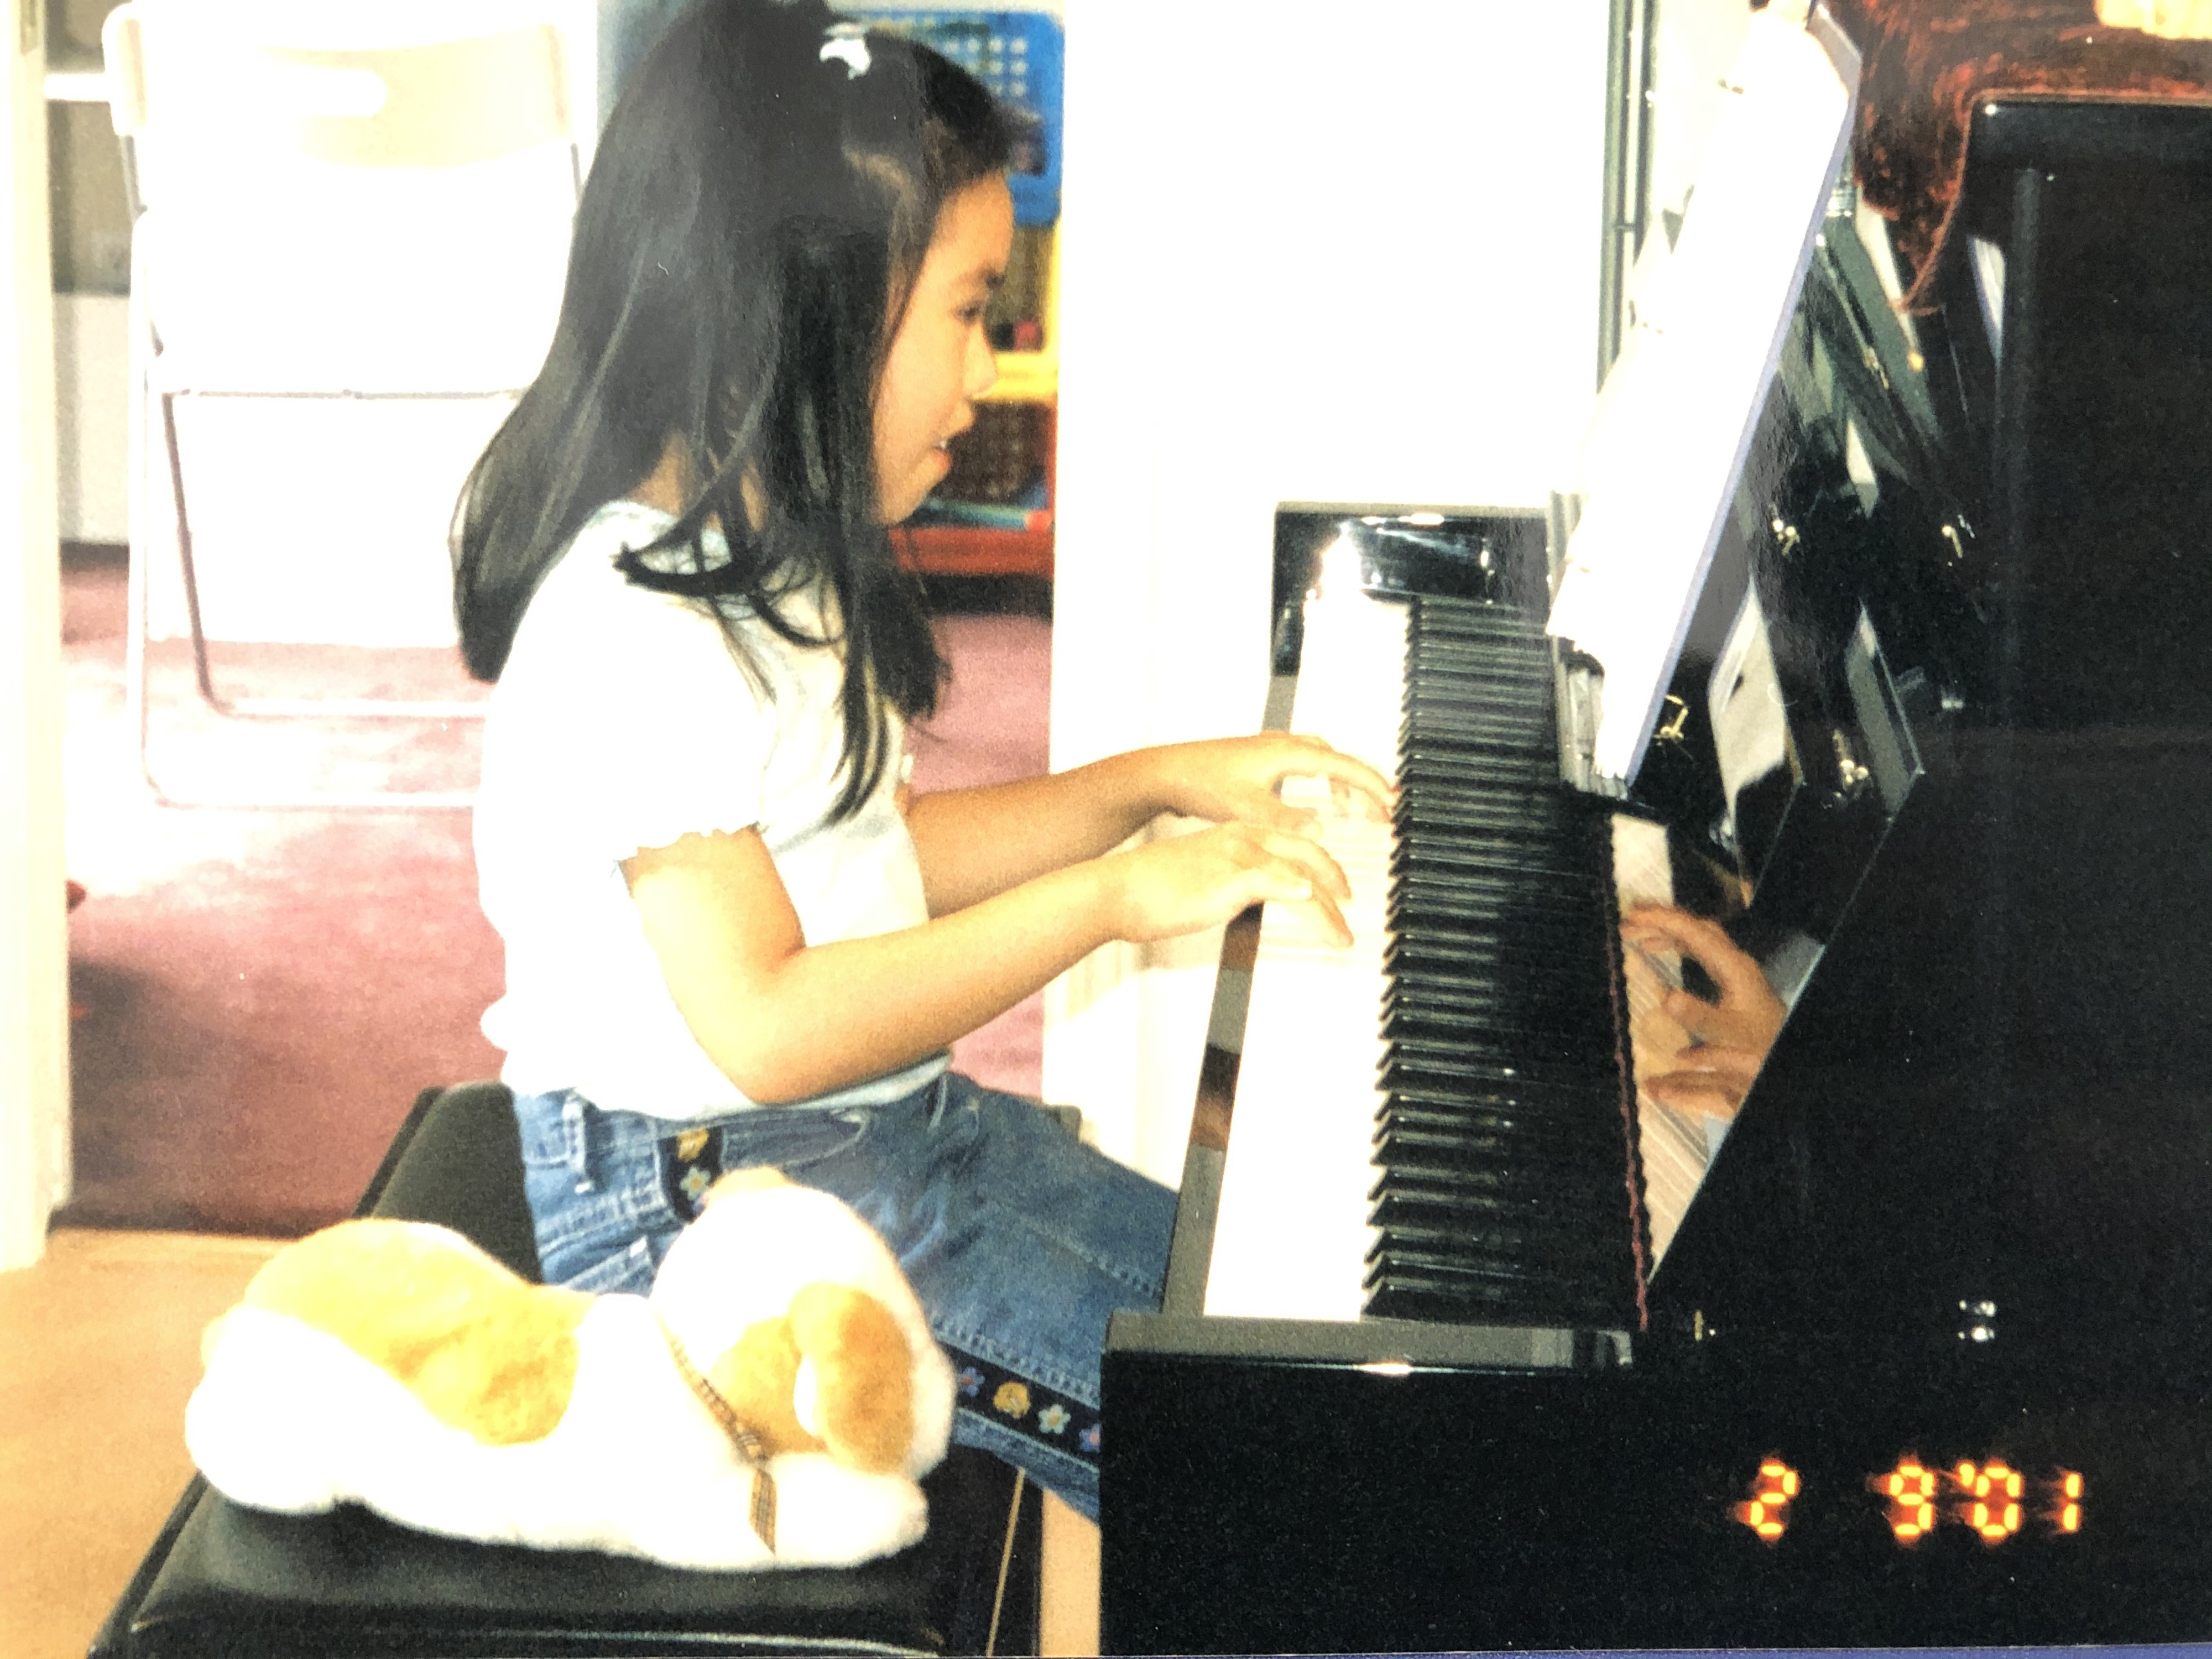 Young girl playing piano with white and orange stuffed dog next to her on the bench.